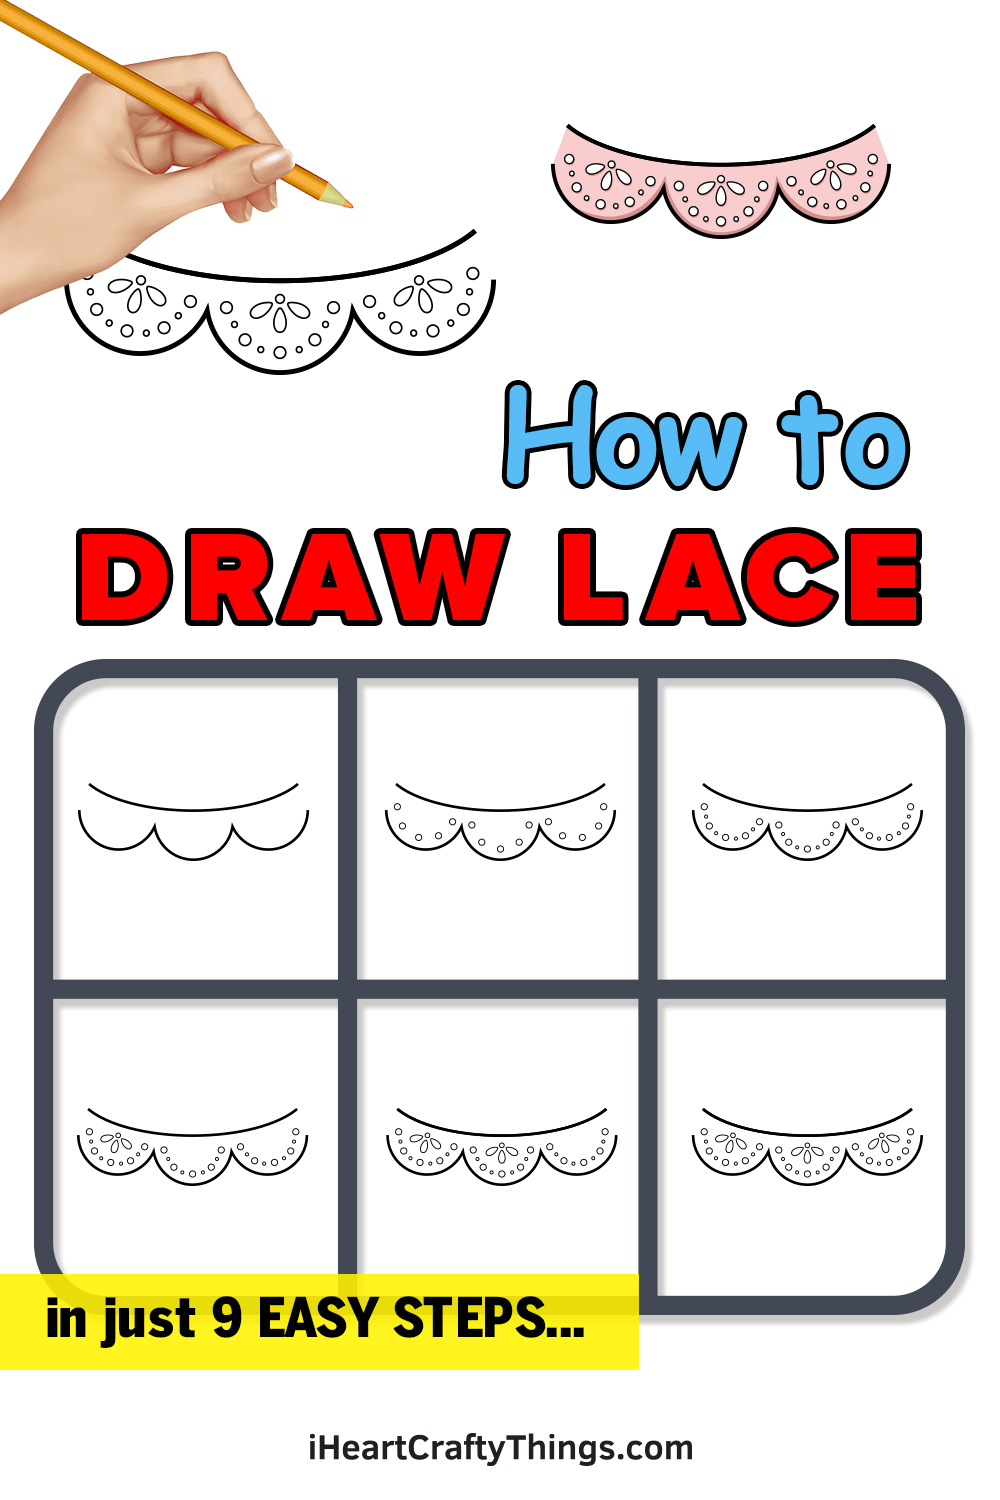 how to draw lace in 9 easy steps